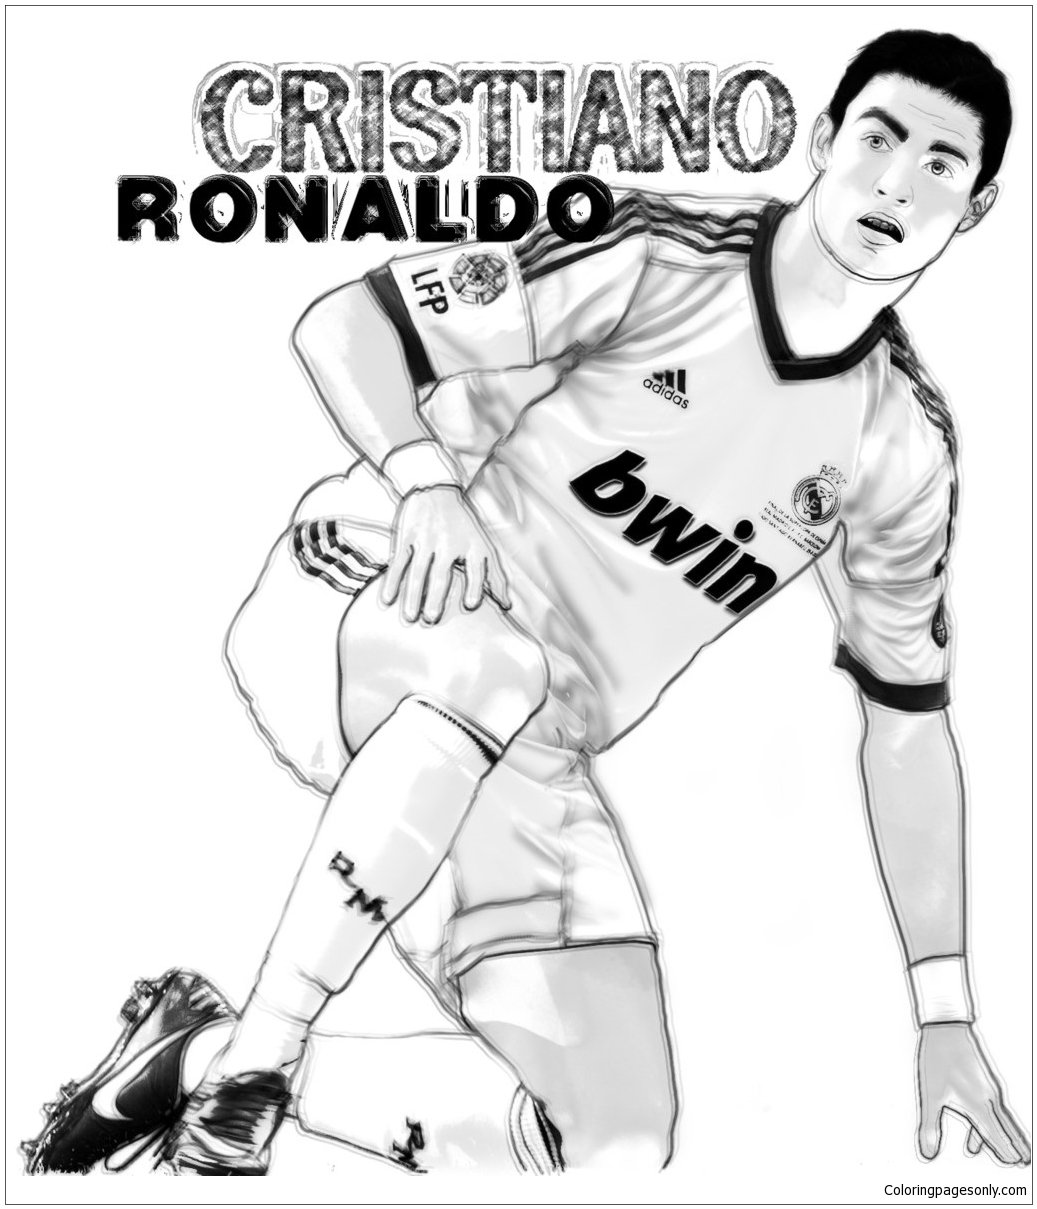 Cristiano Ronaldo-image 6 Coloring Pages - Soccer Players ...